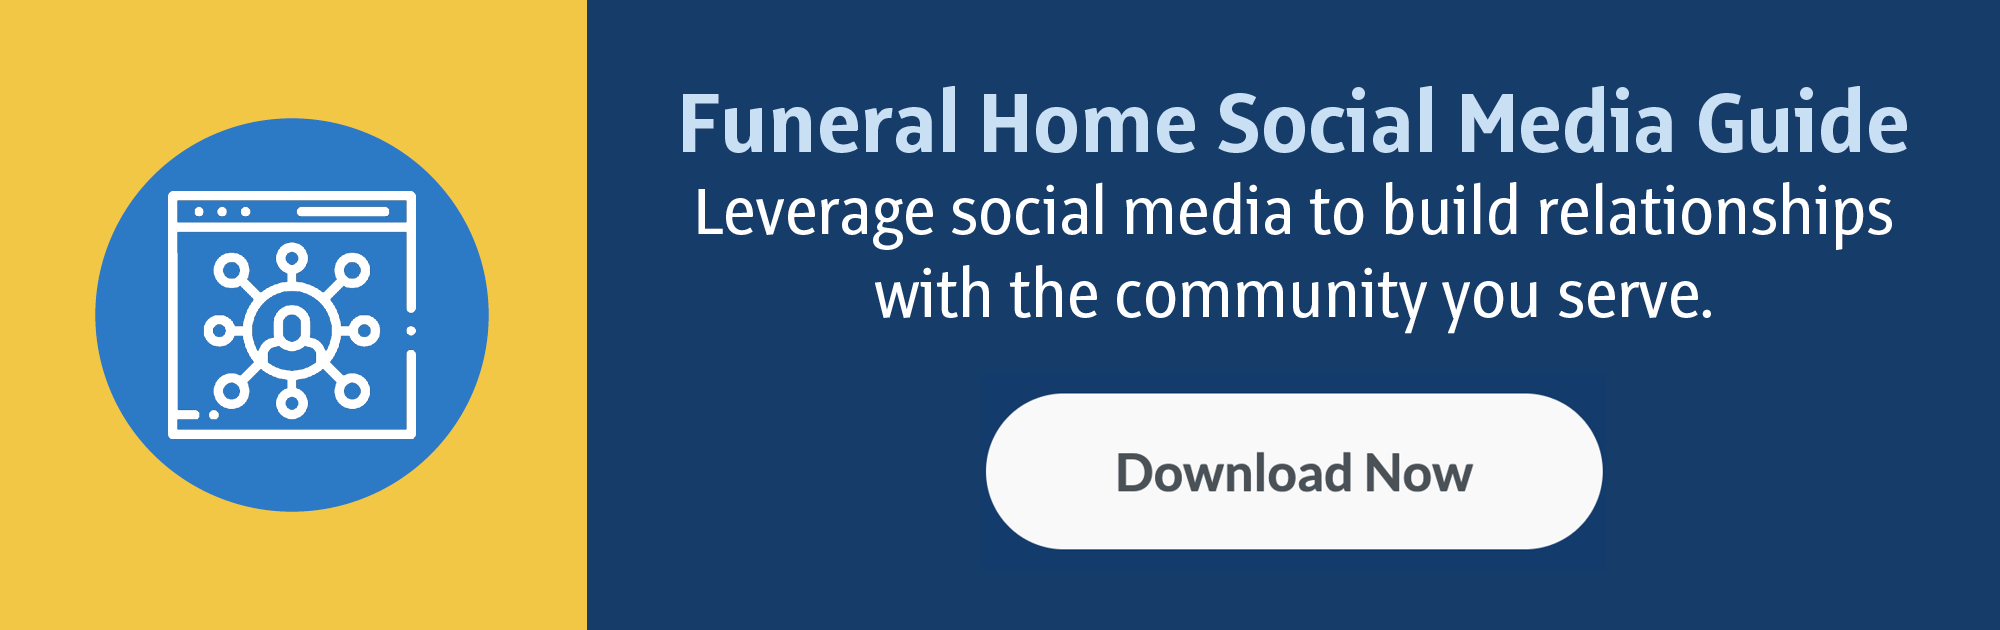 Funeral Home Social Media Guide: Leverage social media to build relationships with the community you serve. (Download Now)